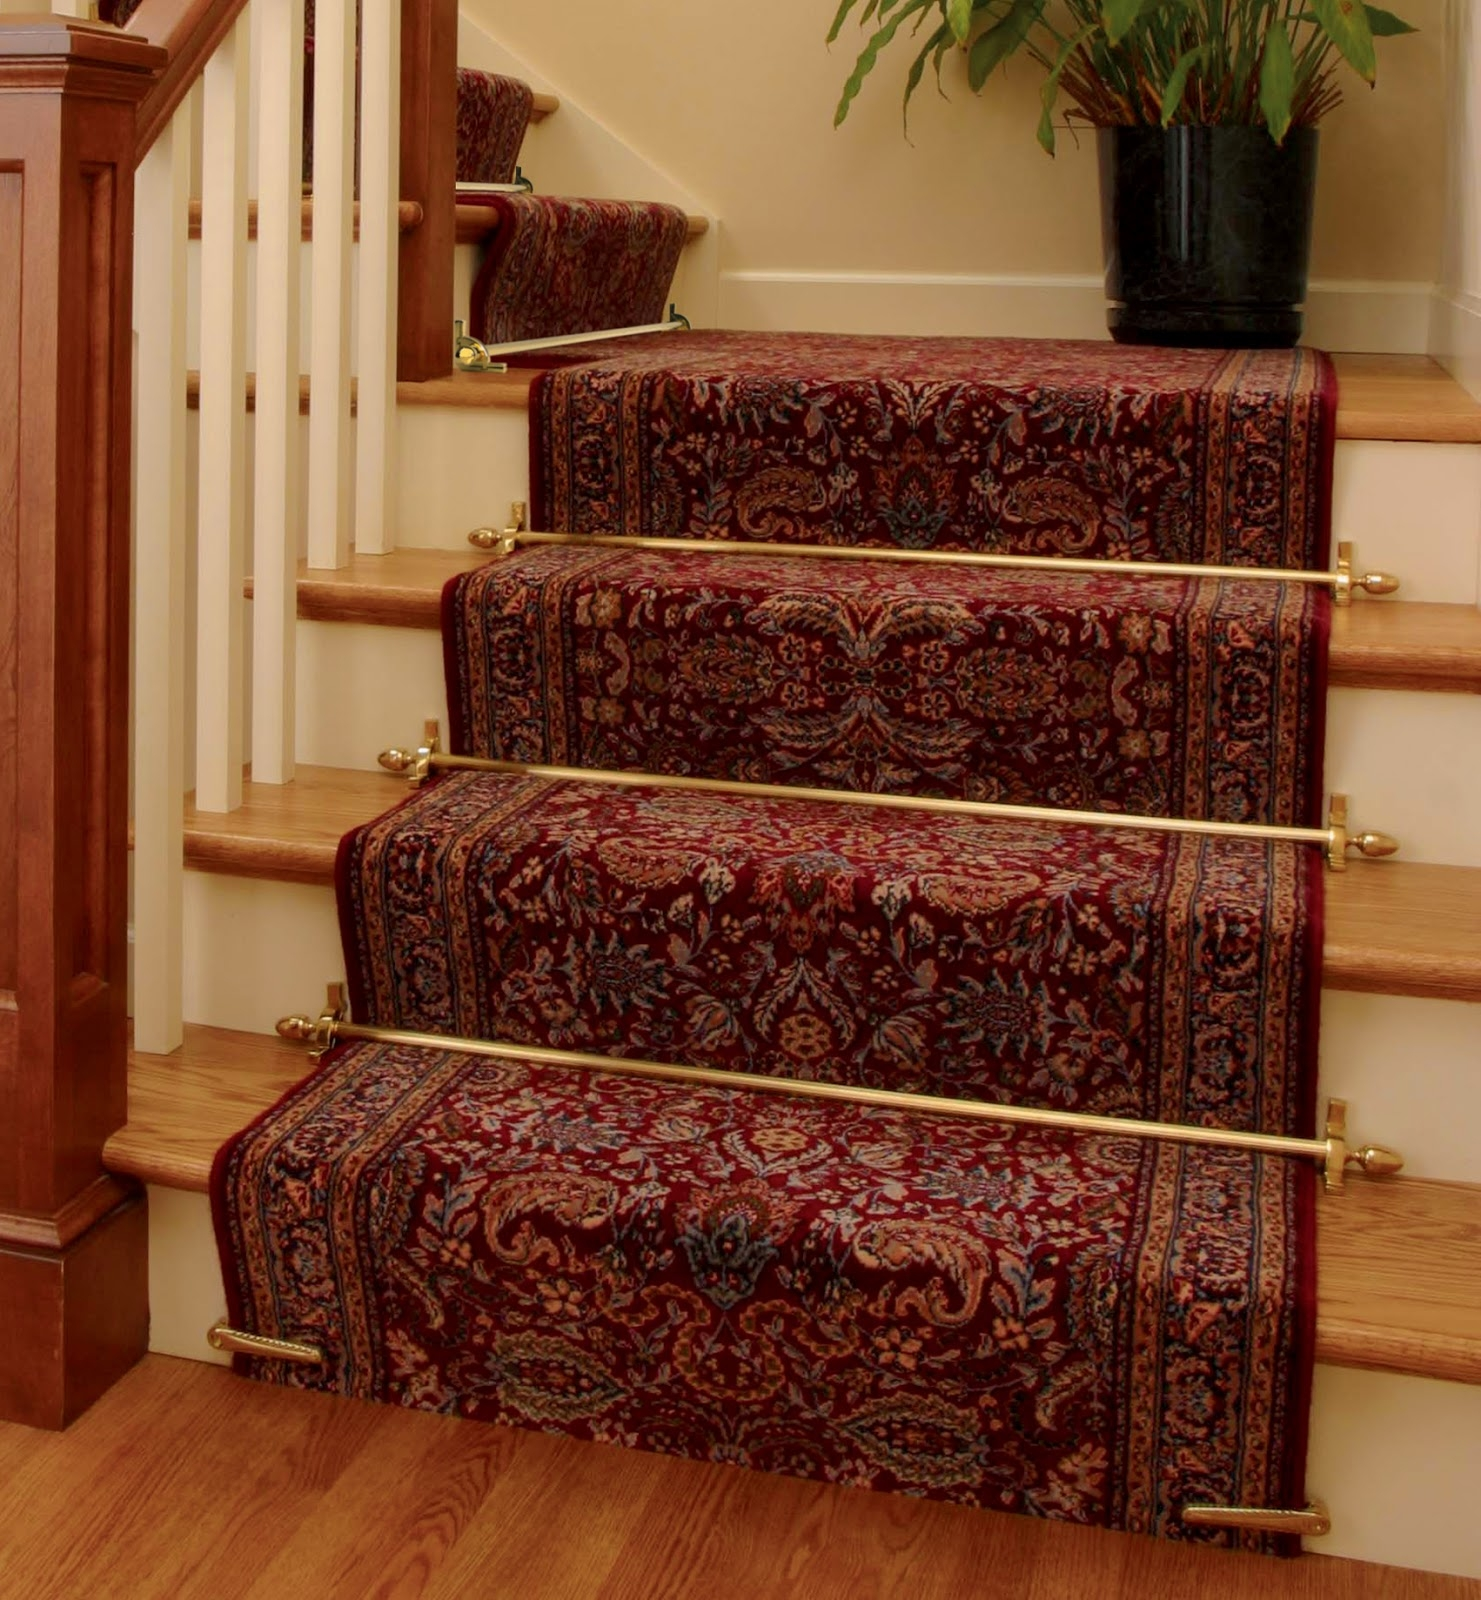 Interior Wooden Stairs With Cream Carpet With Stairs Carpet With Regard To Stair Tread Carpet Rods (Image 7 of 15)